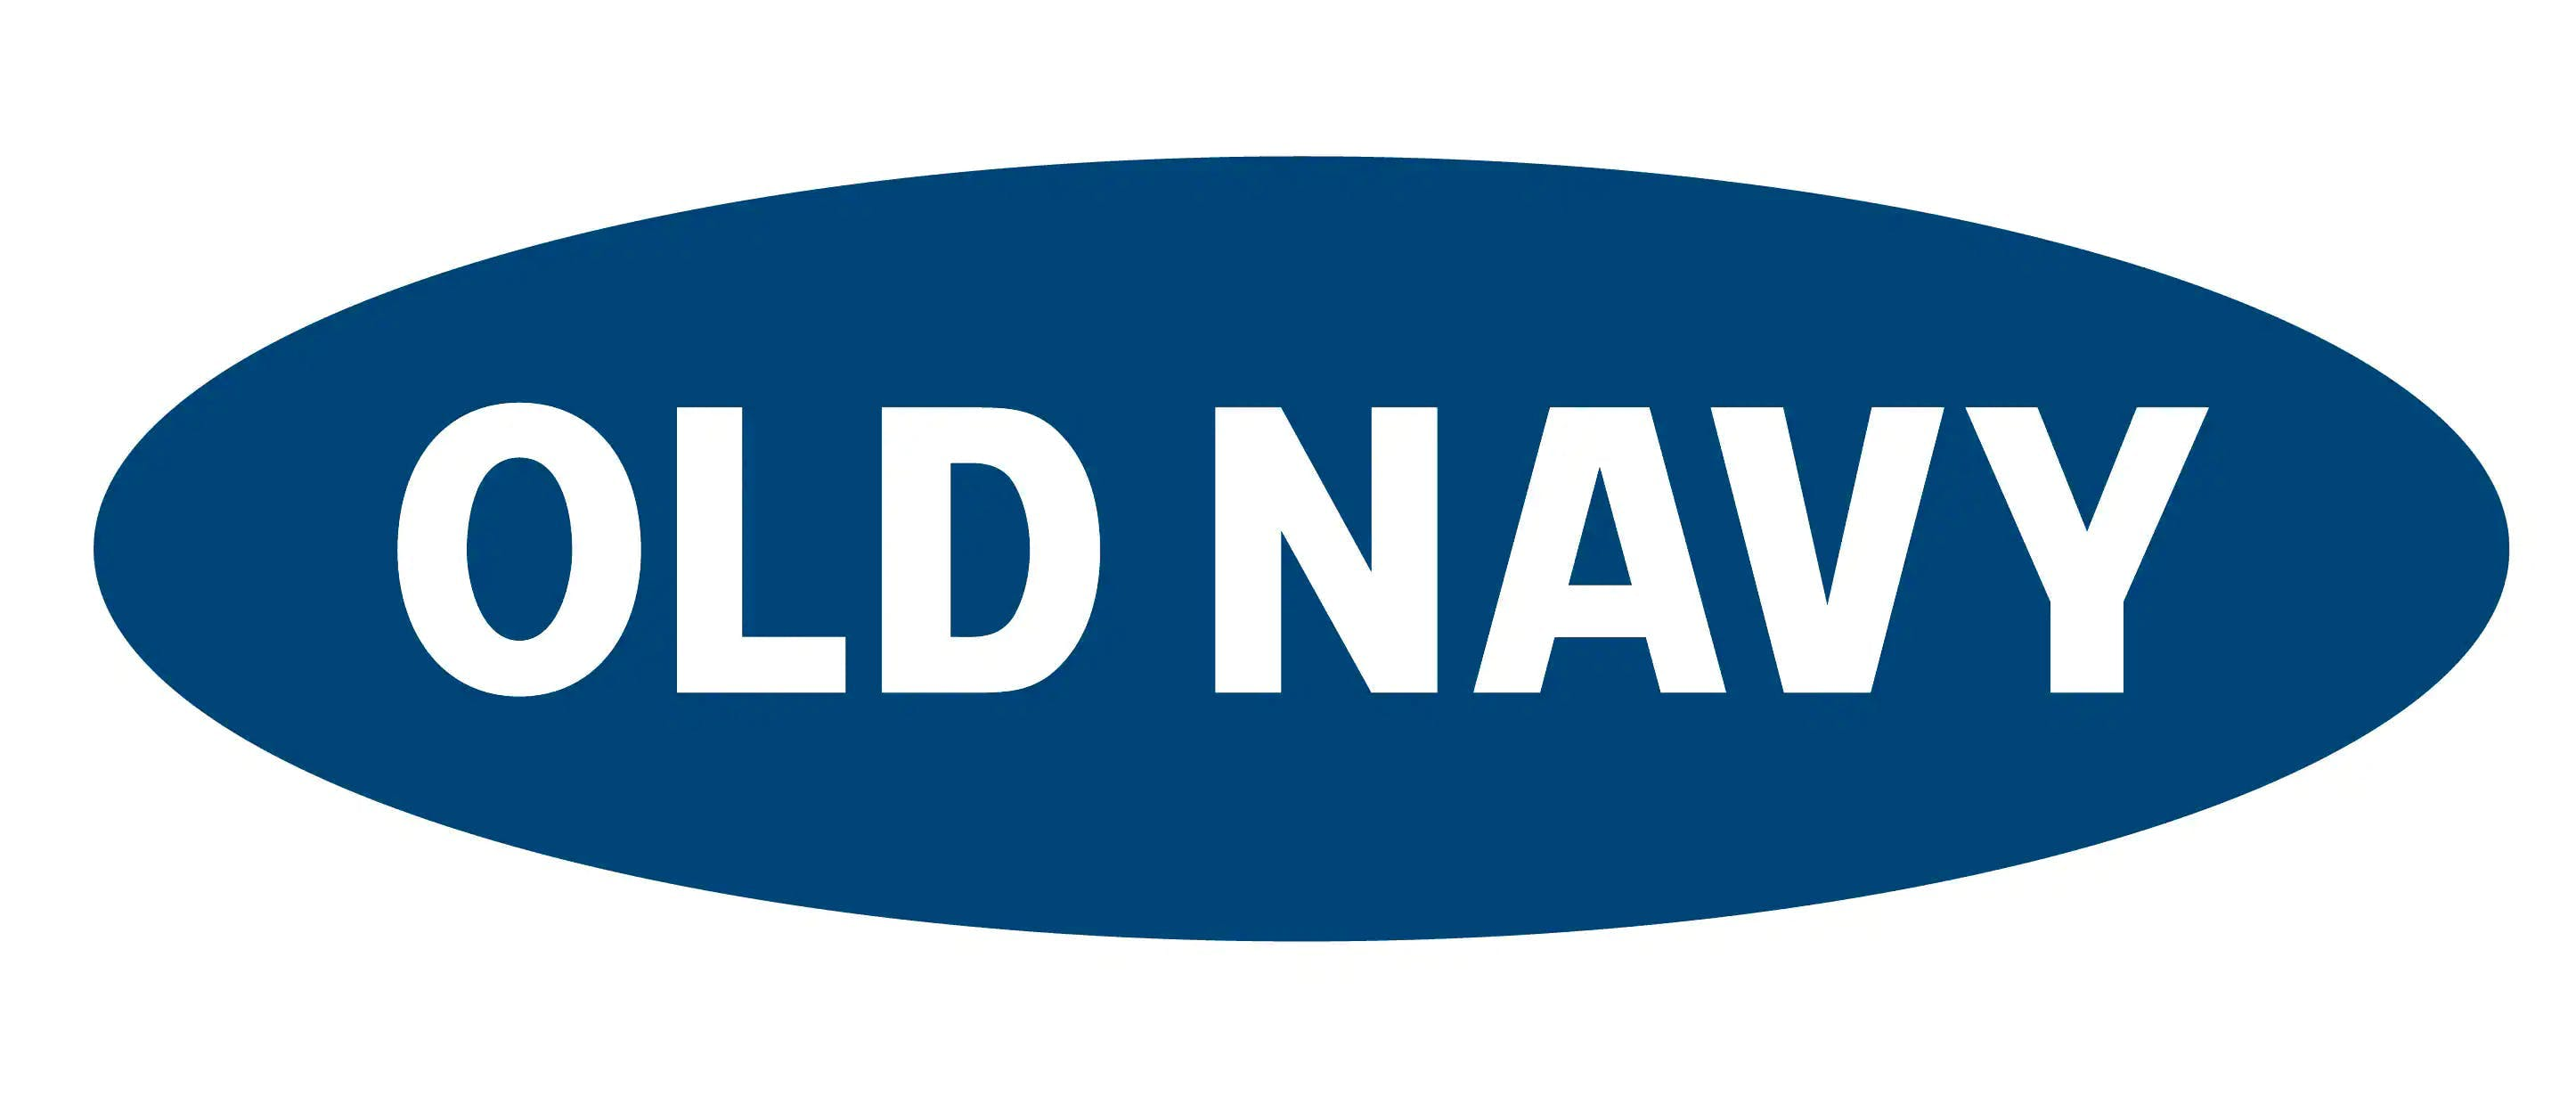 old navy logo1